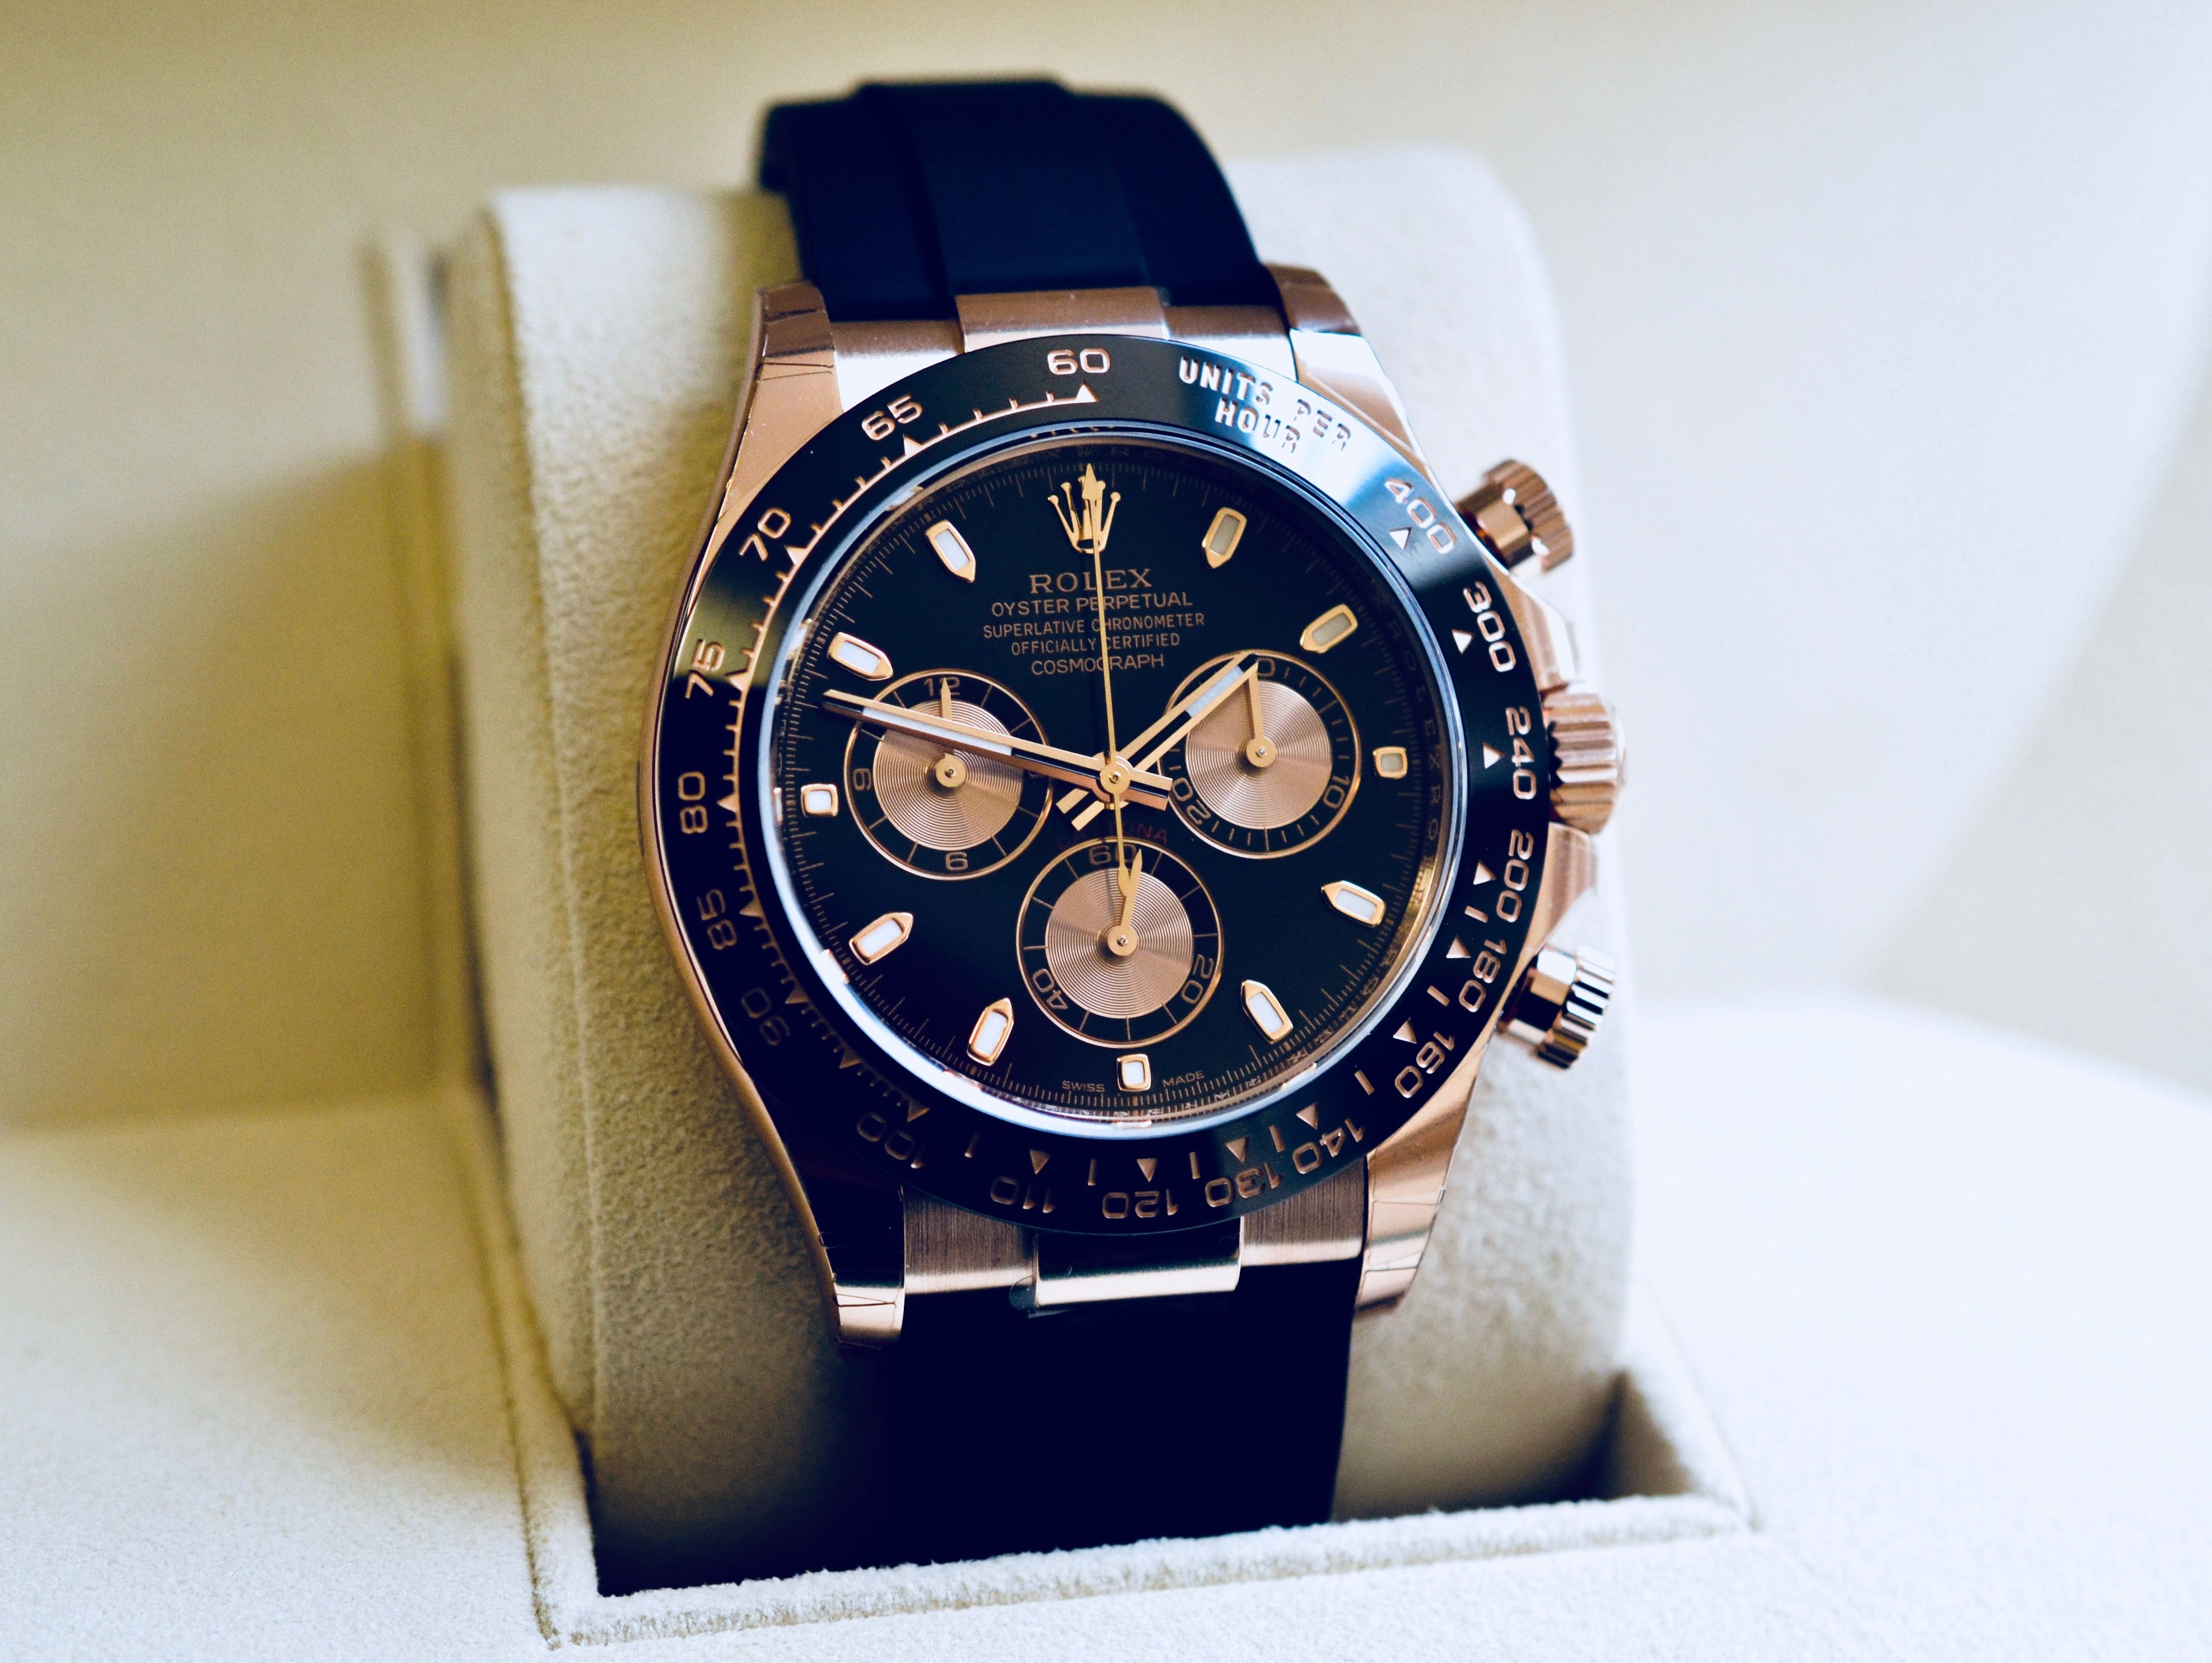 Genuine Rolex watches in stock at discounted prices!